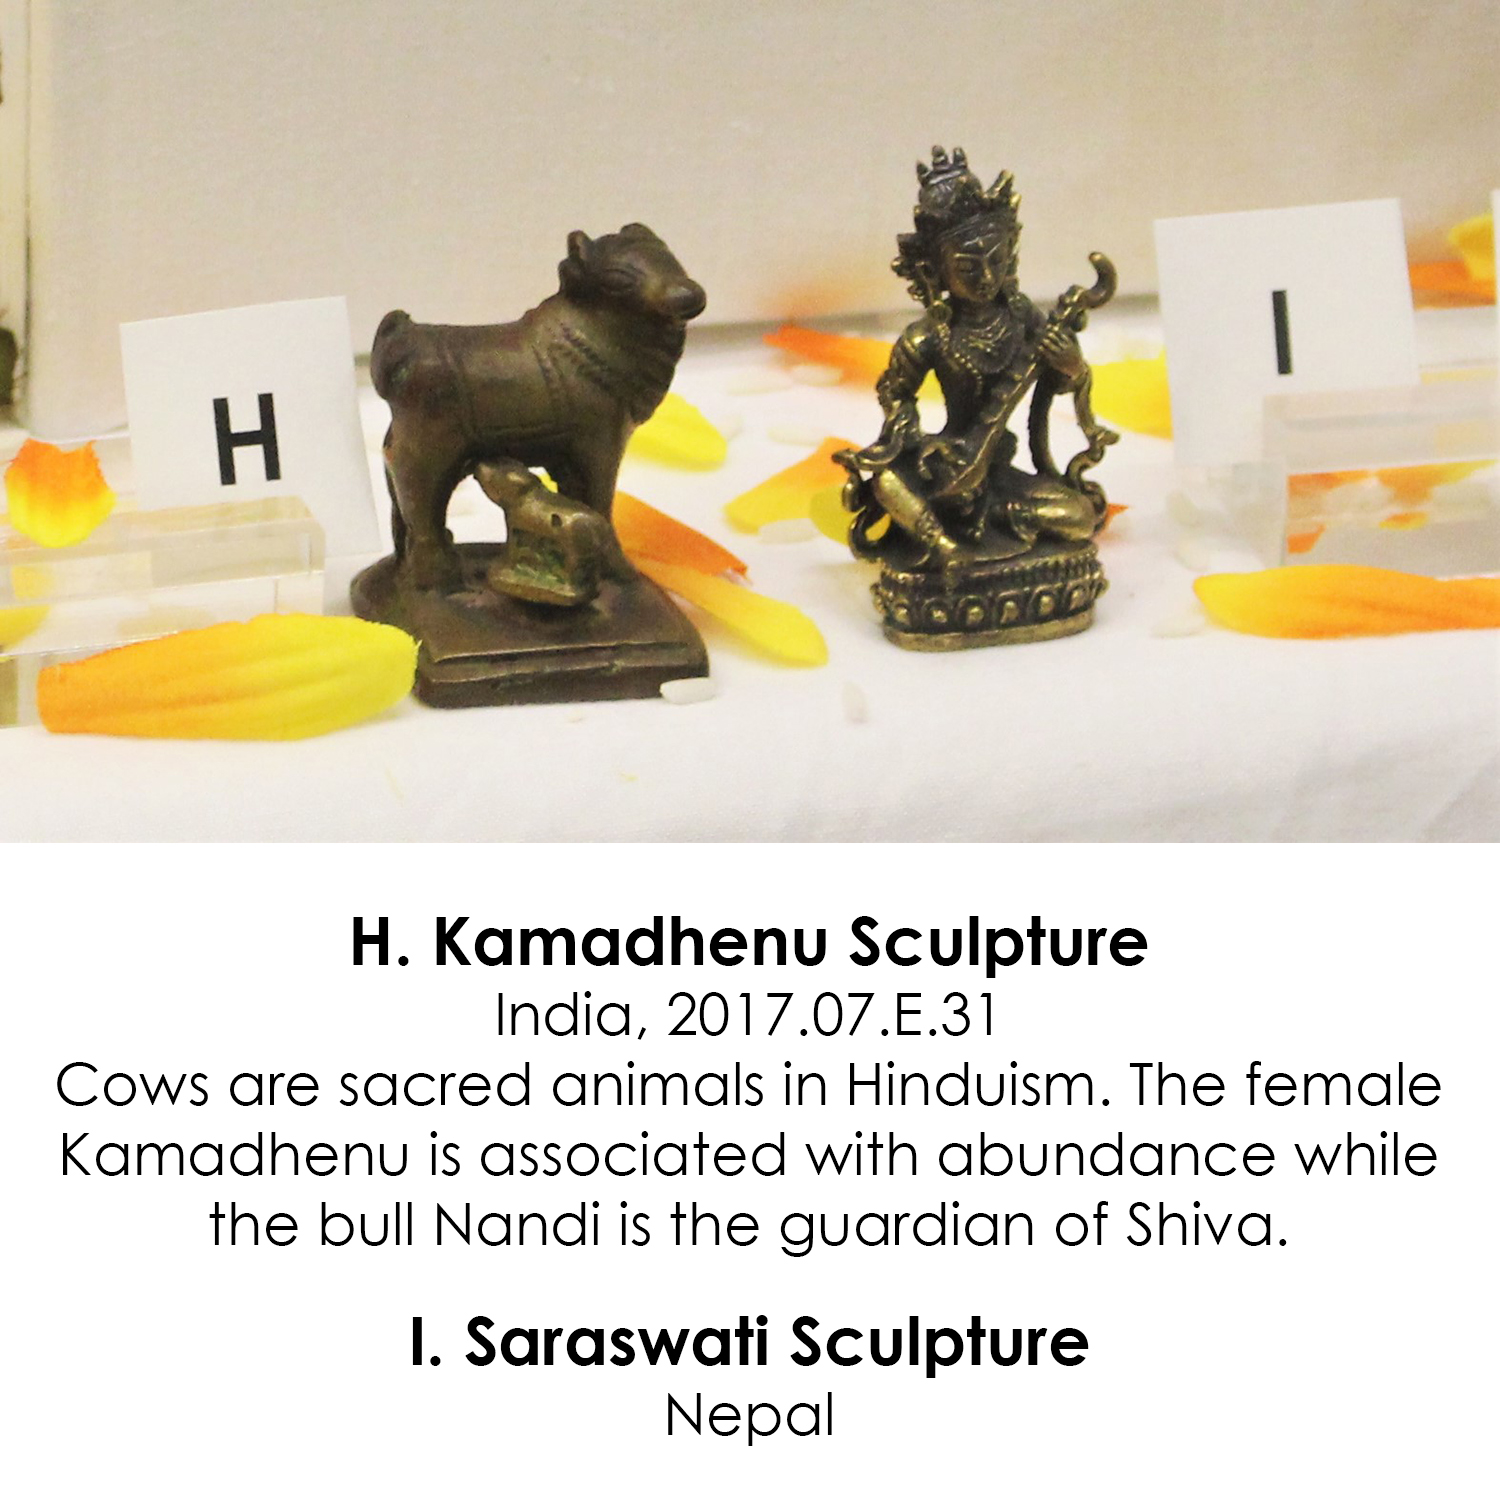 Kamadhenu sculpture and Saraswati sculpture from India